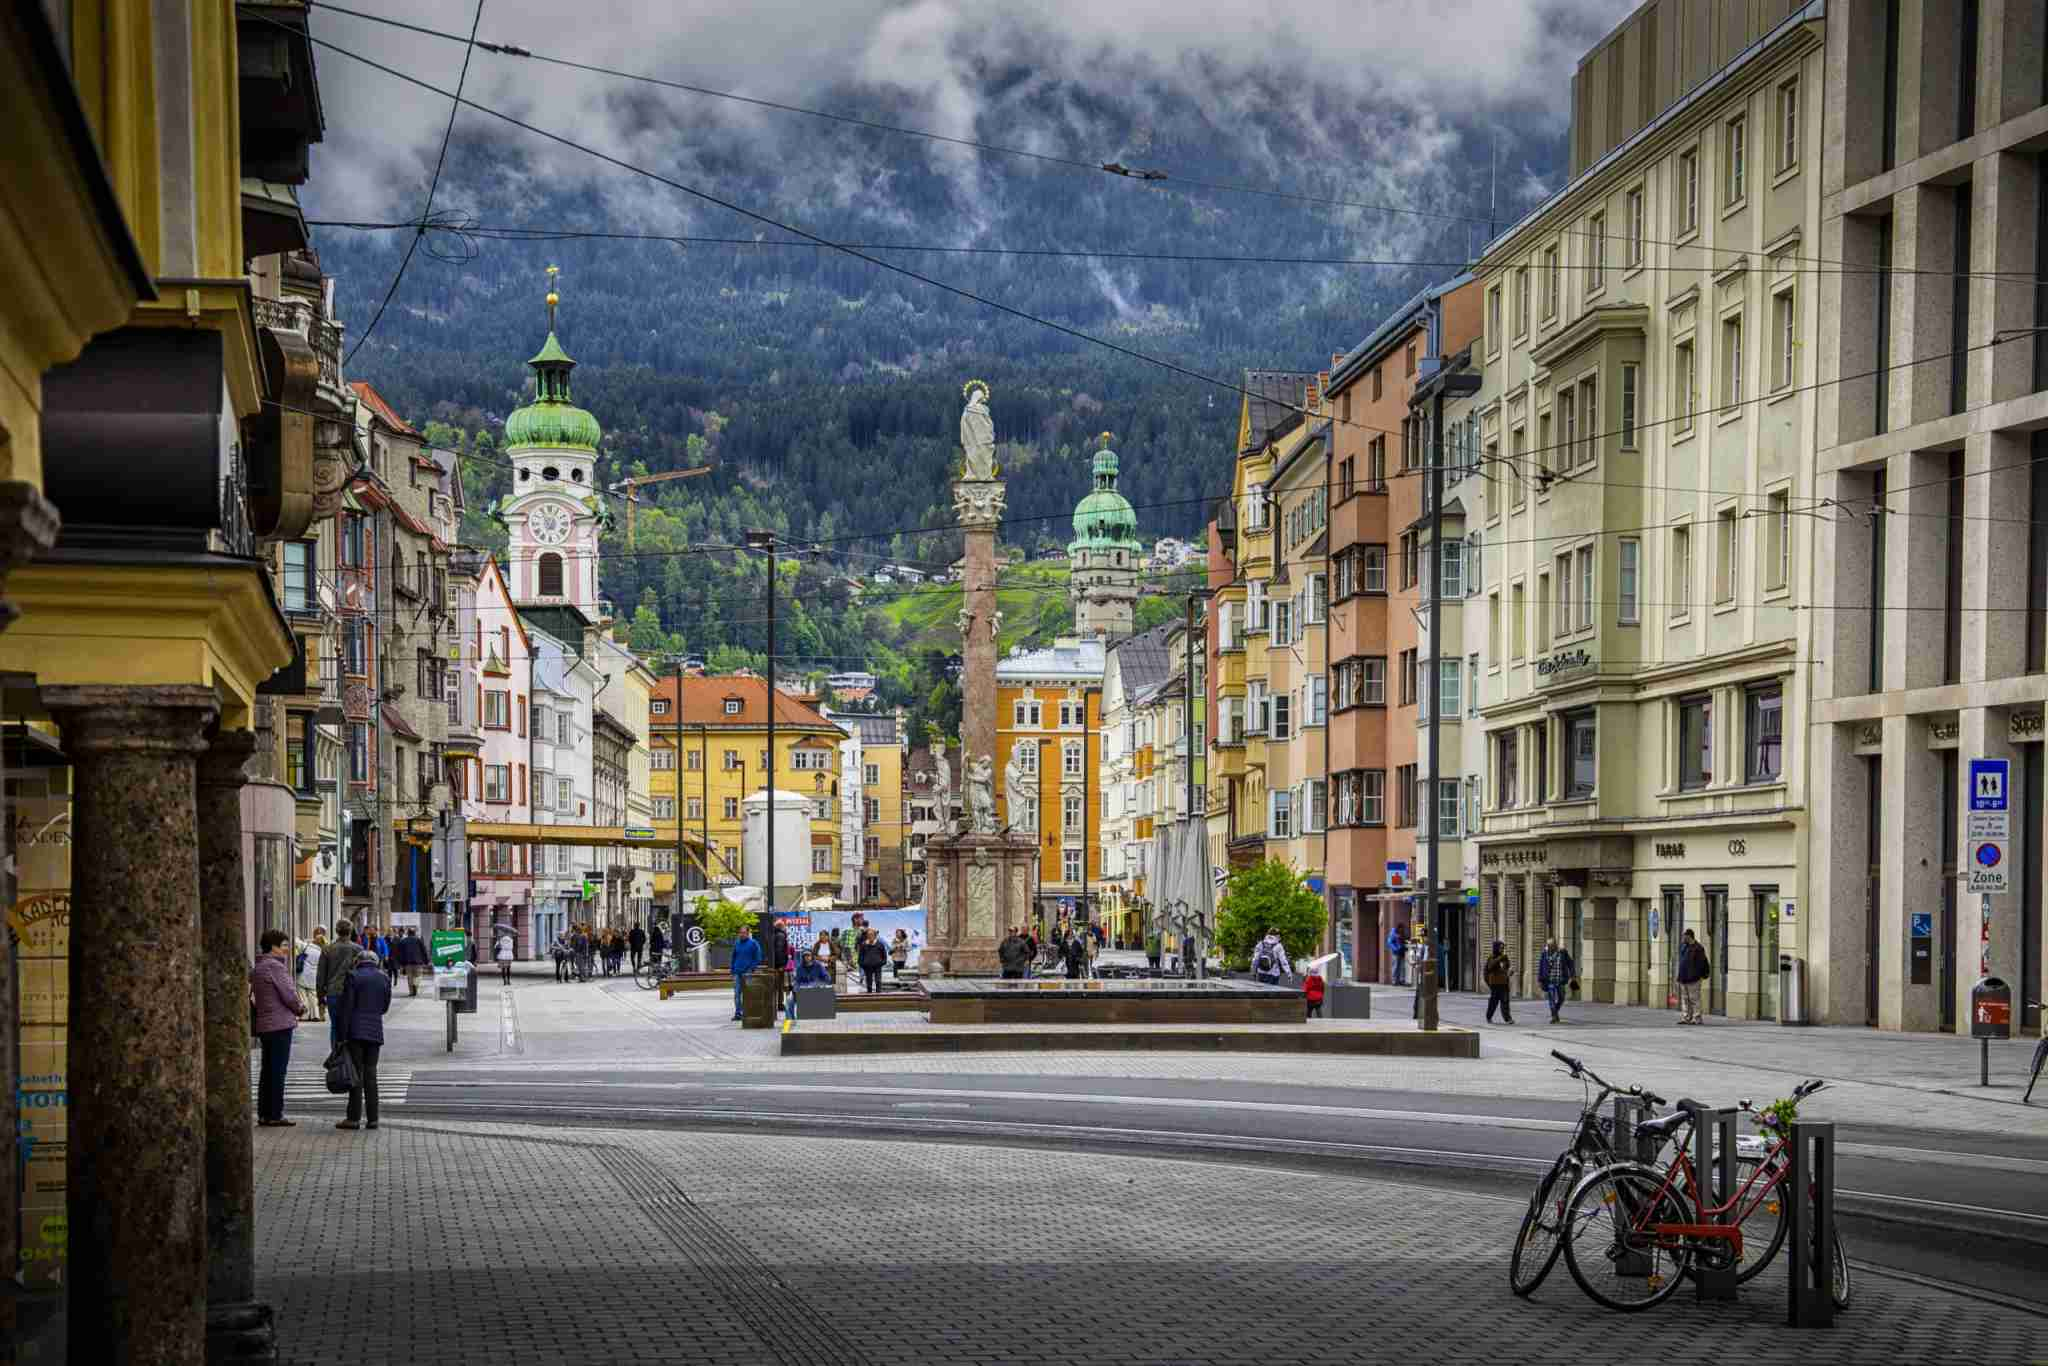 Market square of Old town of Innsbruck, Austria